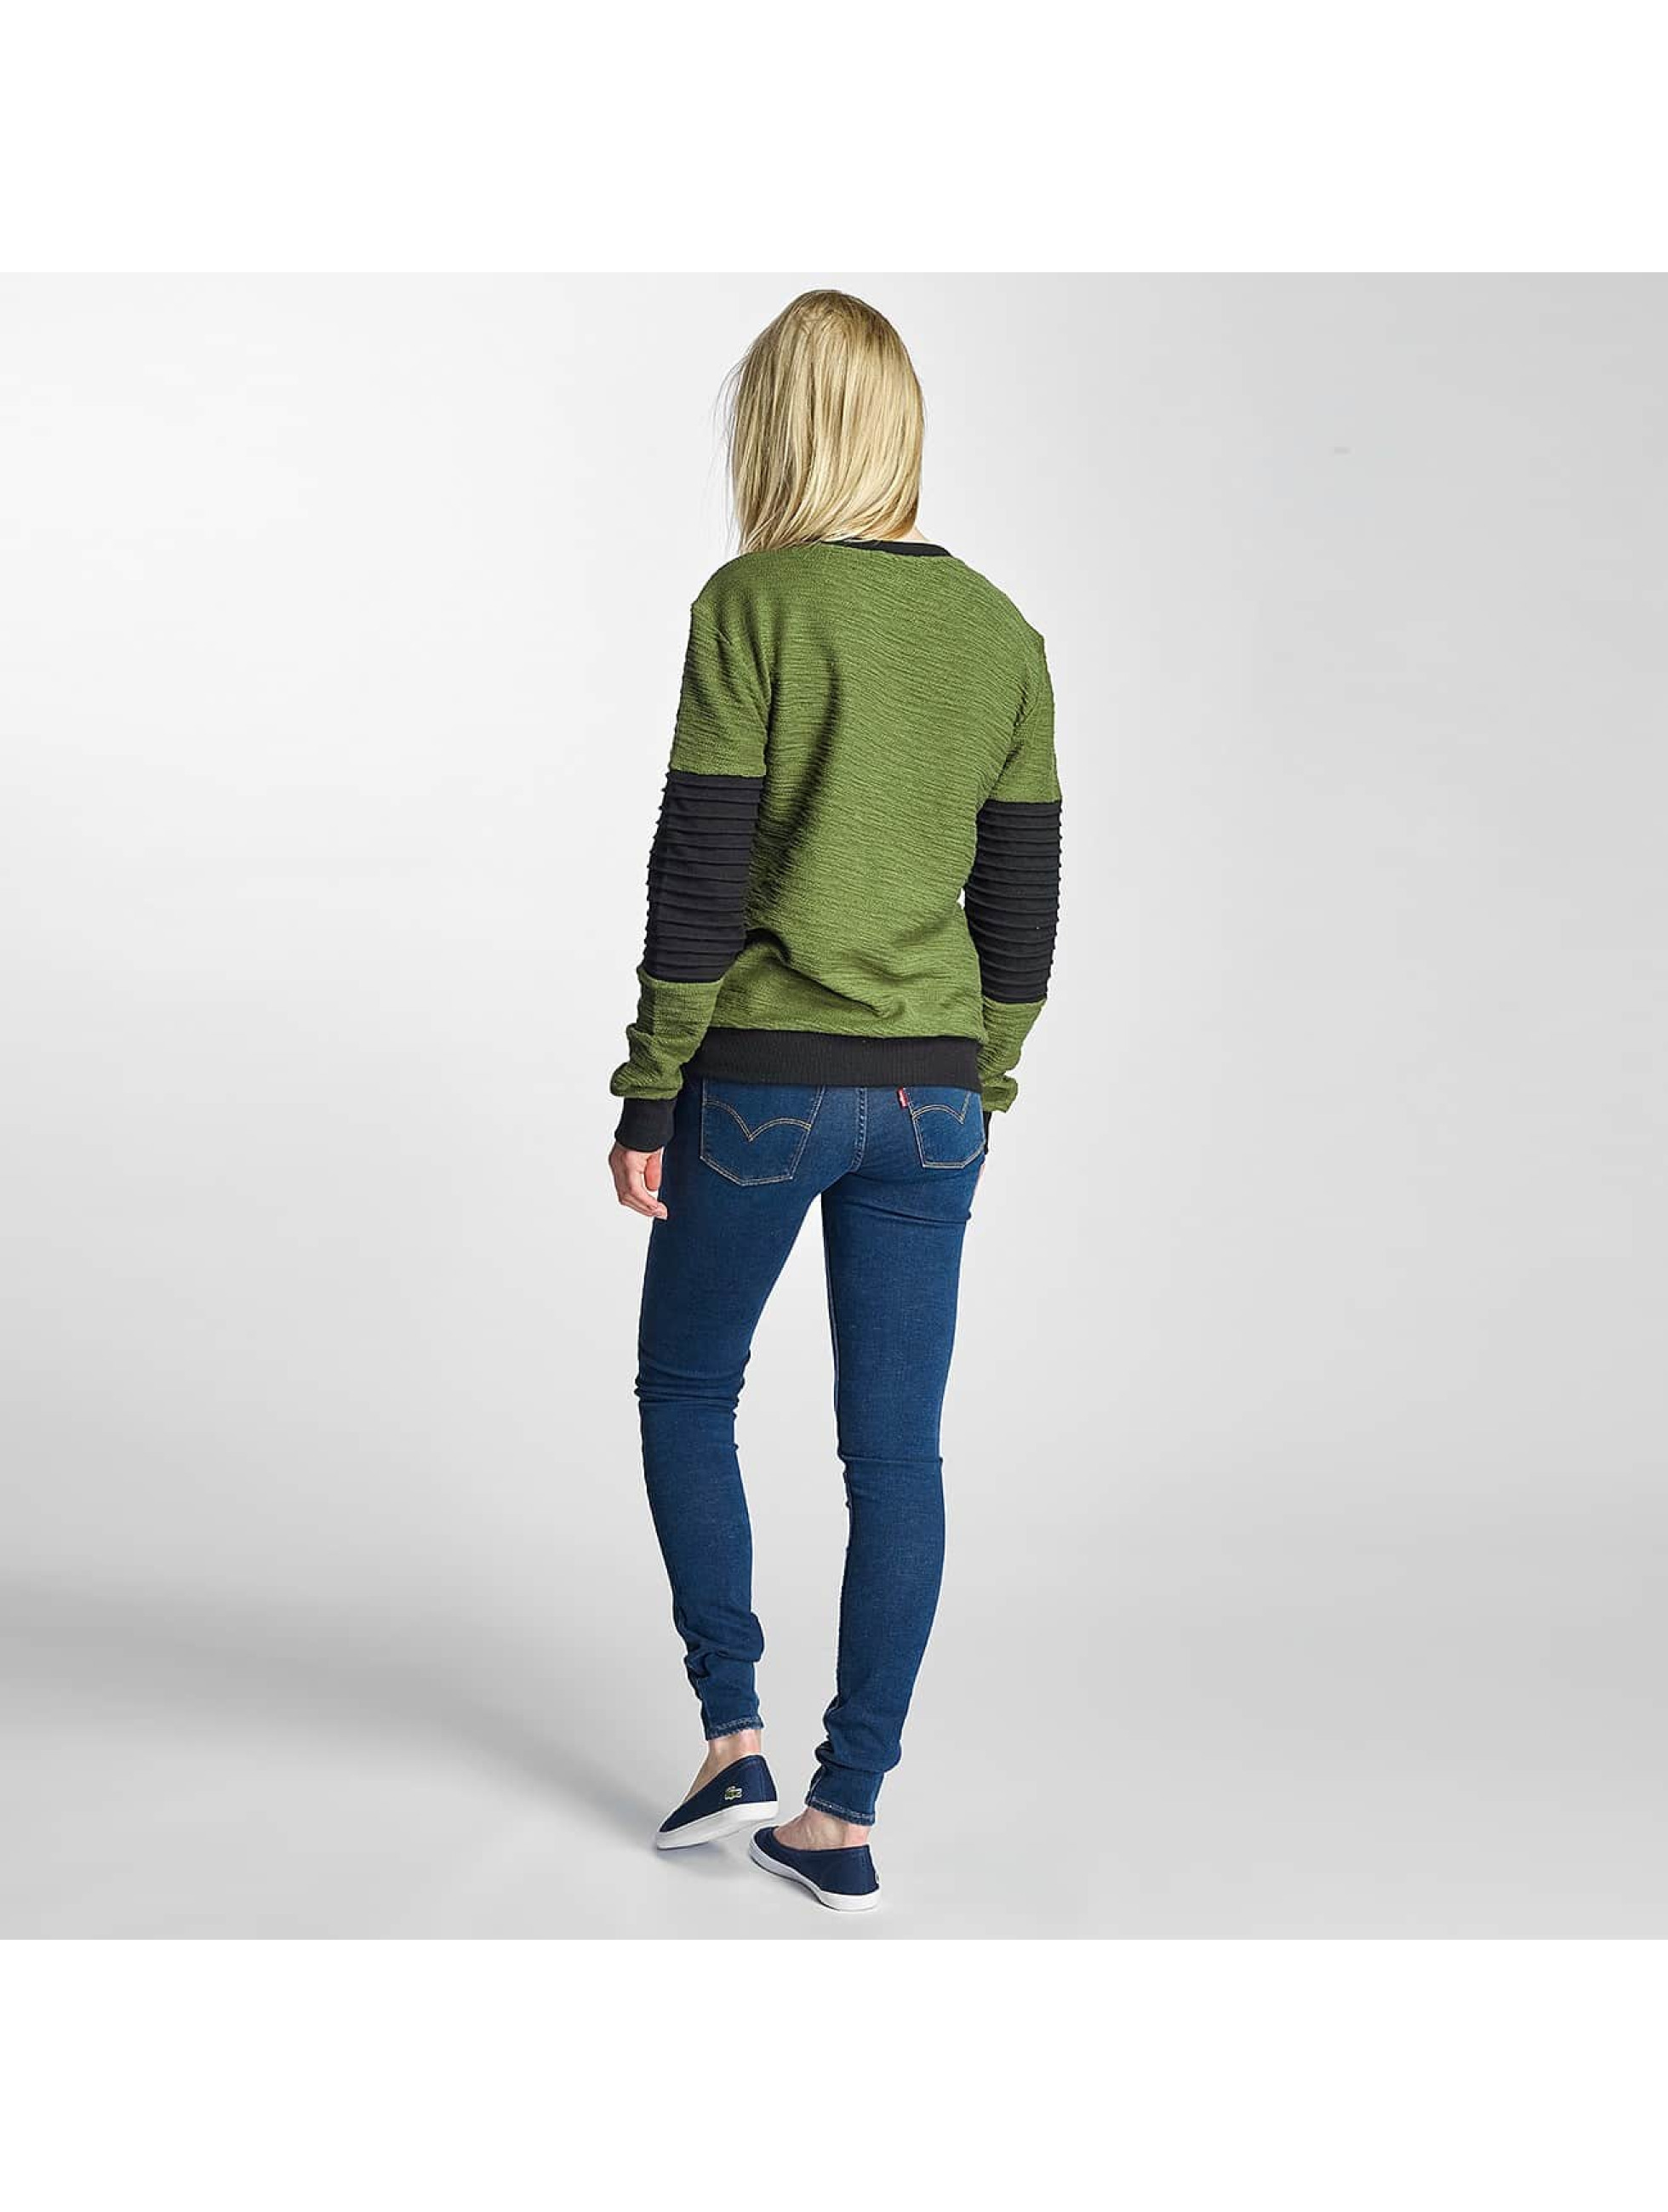 Paris Premium Jumper Pocket olive